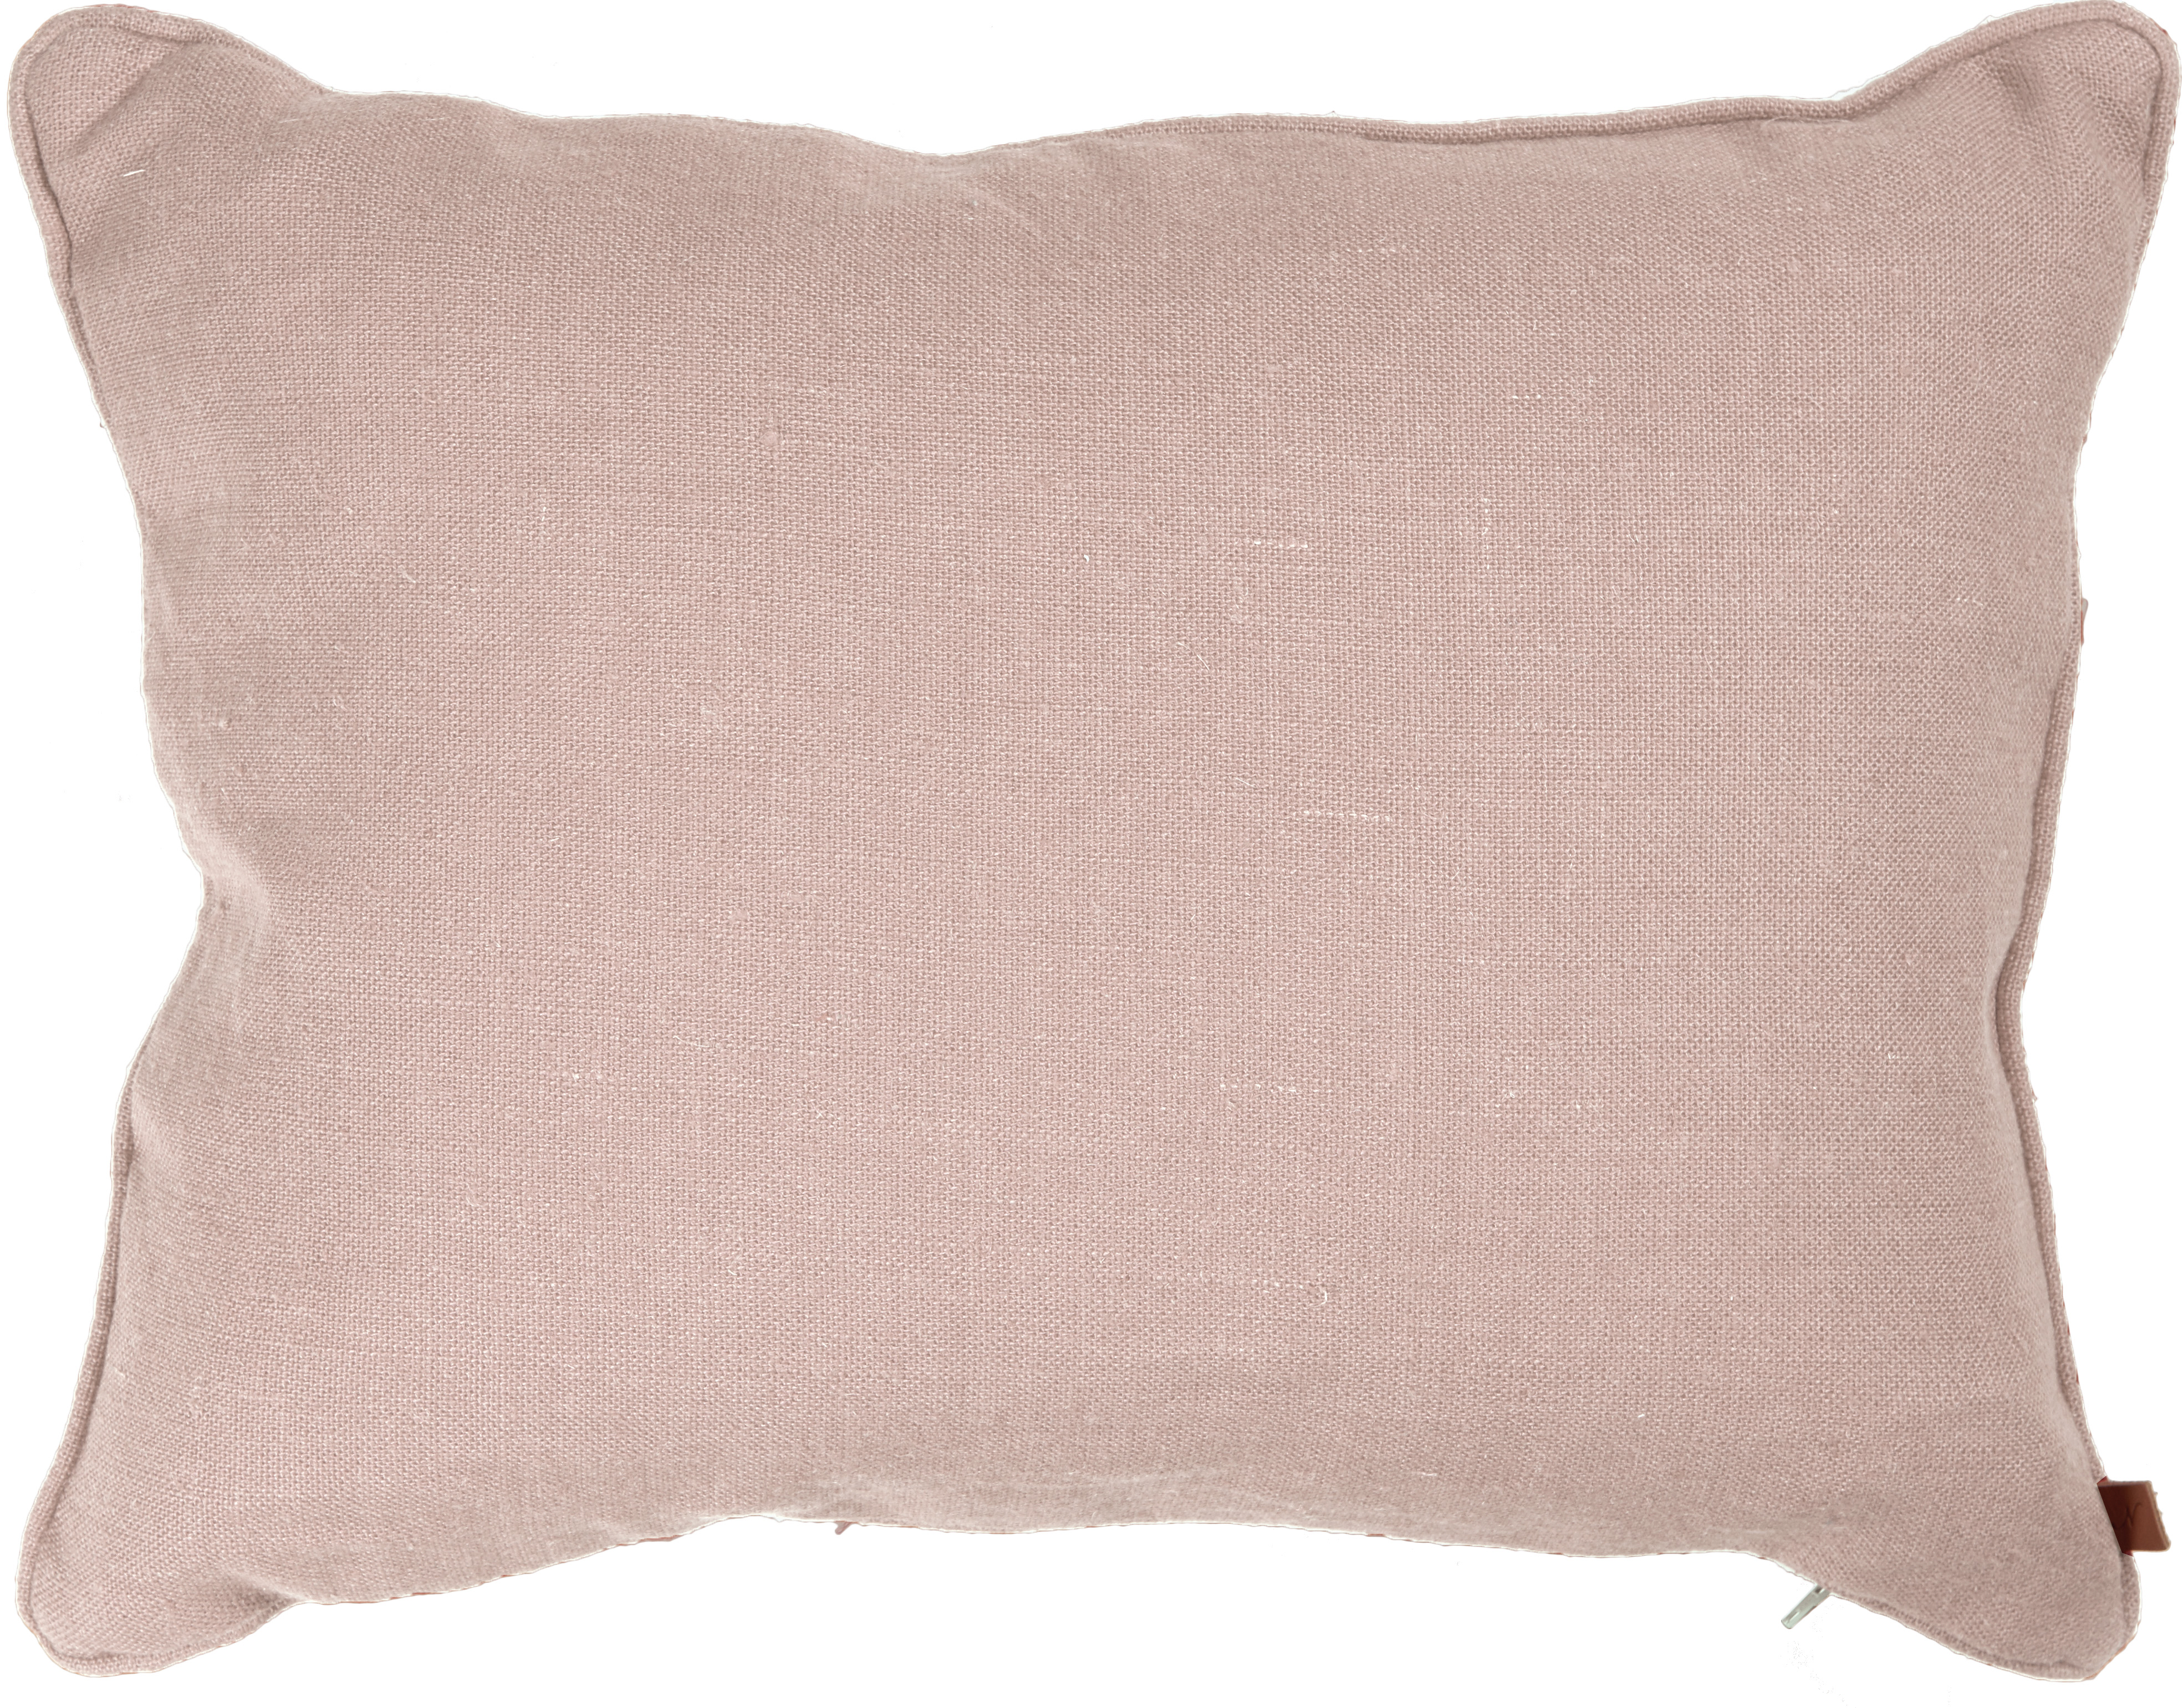 Florence Cushion 35x45cm, Imogen Oyster Pink